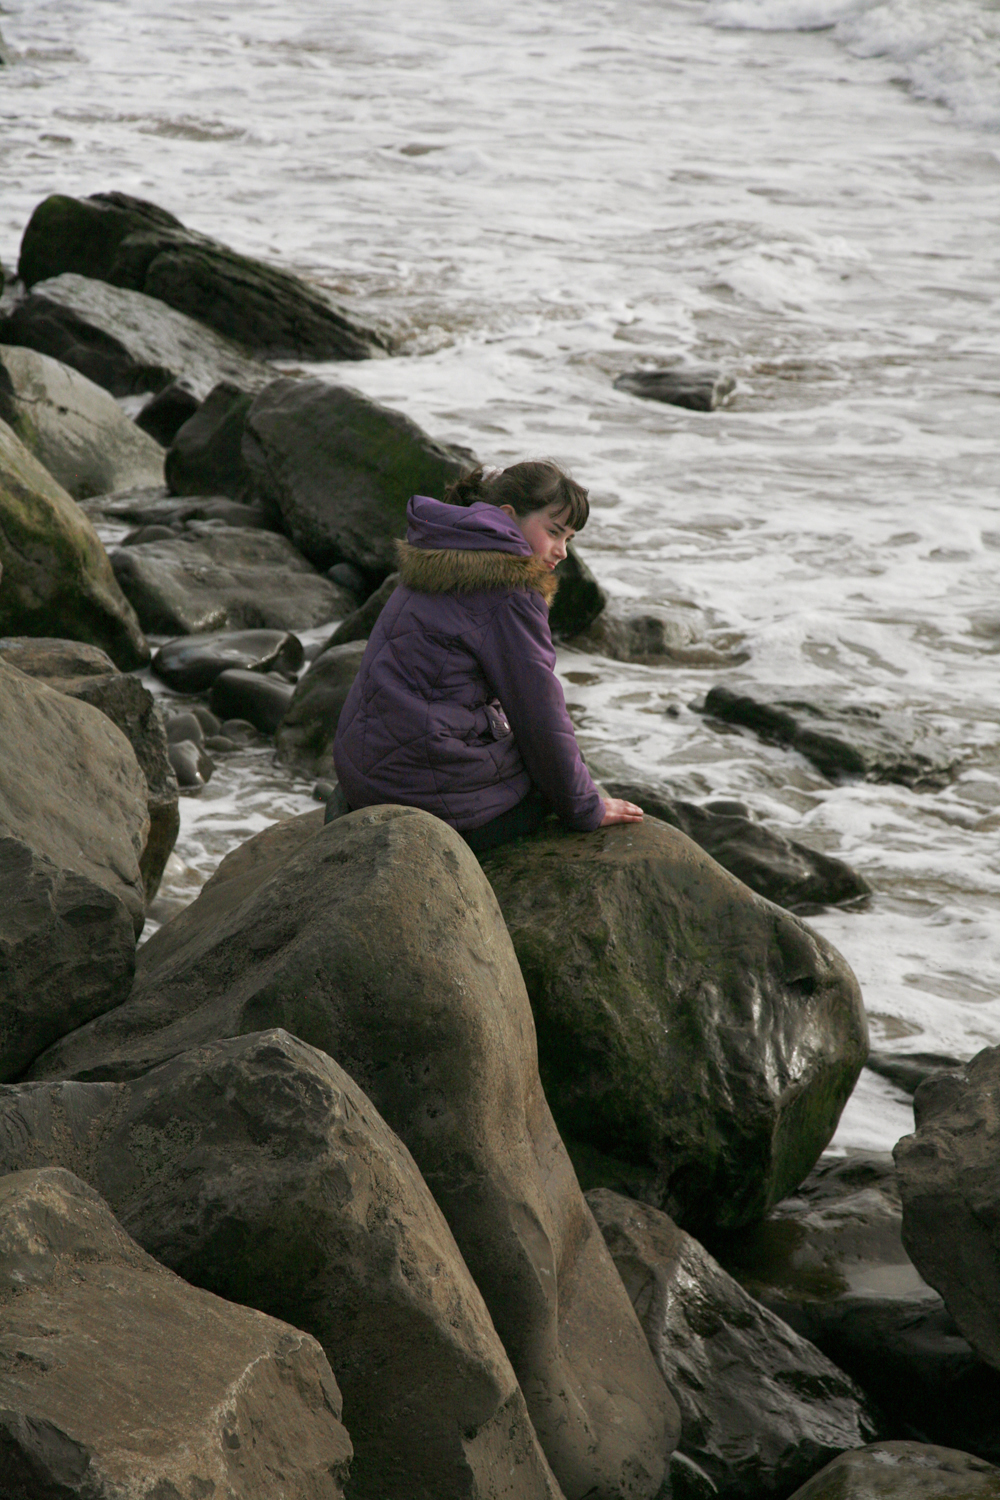 A documentary photograph of a girl sitting on the rocks of an Irish beach with a winter coat on